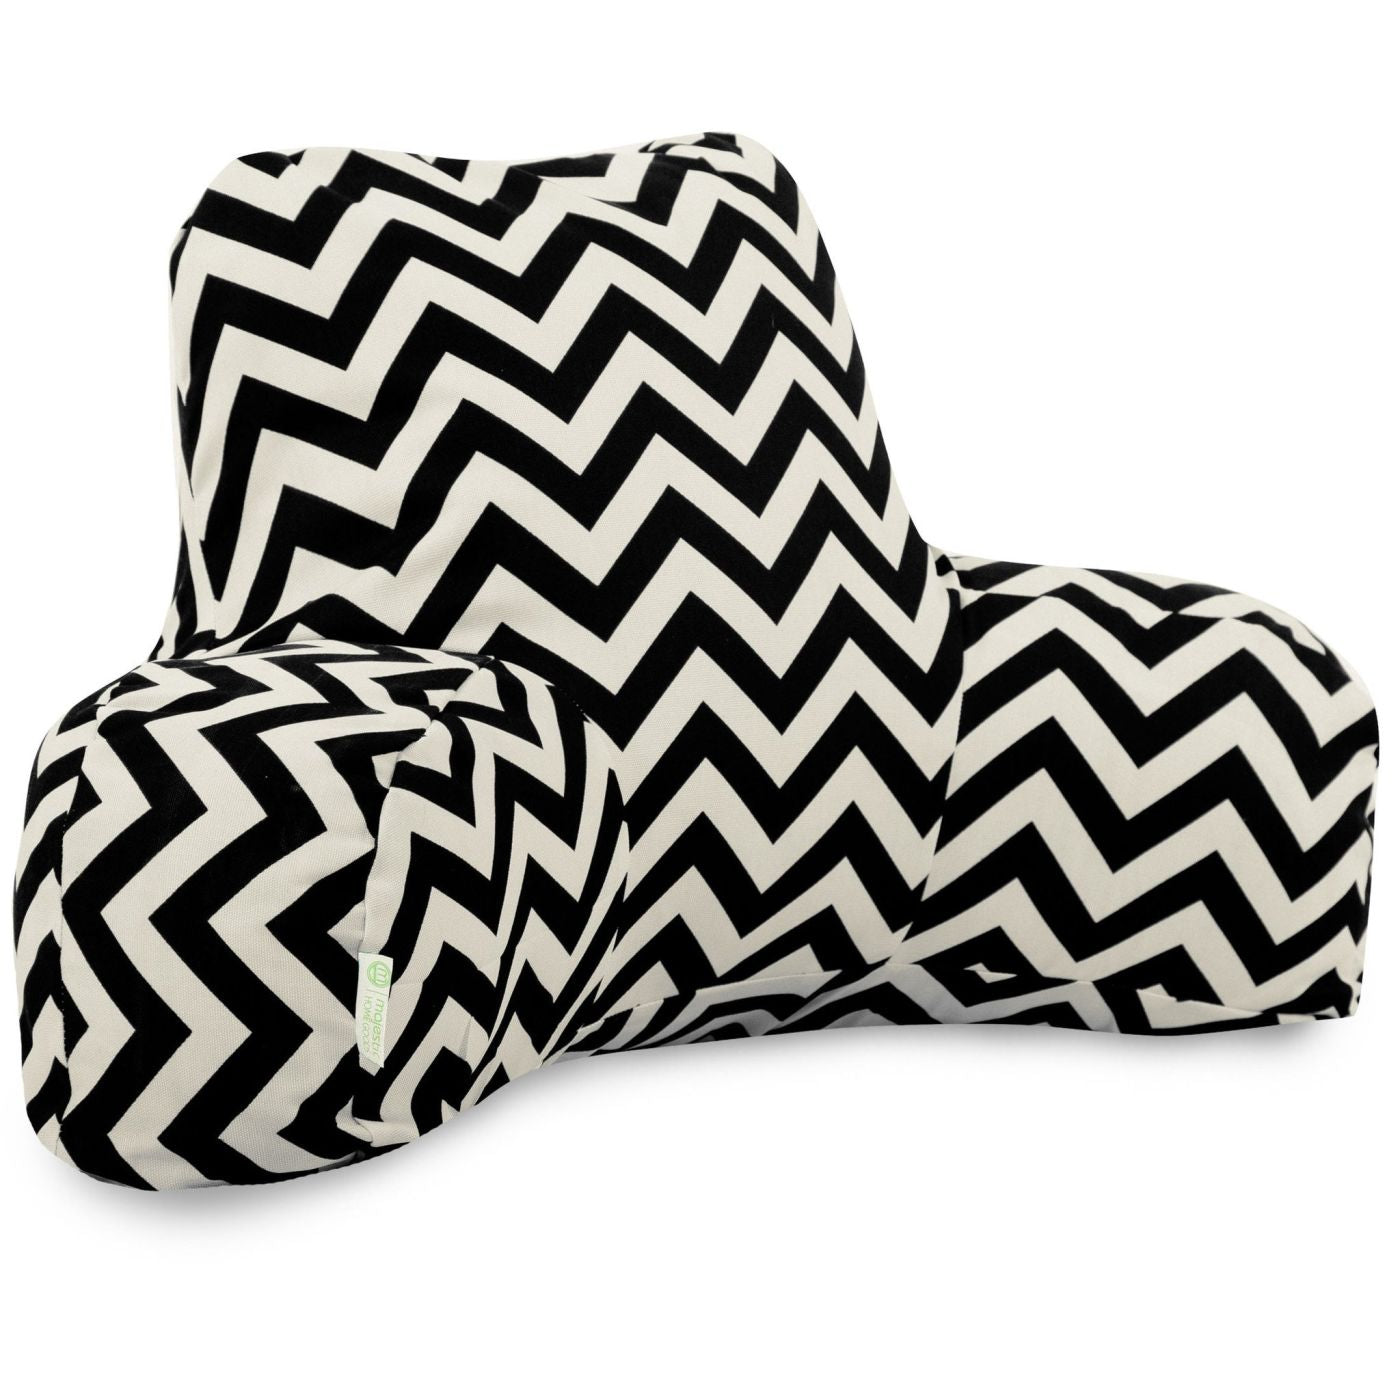 Black patio furniture cushions can add a bold, dramatic element to your outdoor coolmfilb6.gqing for Everyone· Shop our Huge Selection· Up to 70% Off· Top Brands & Styles.